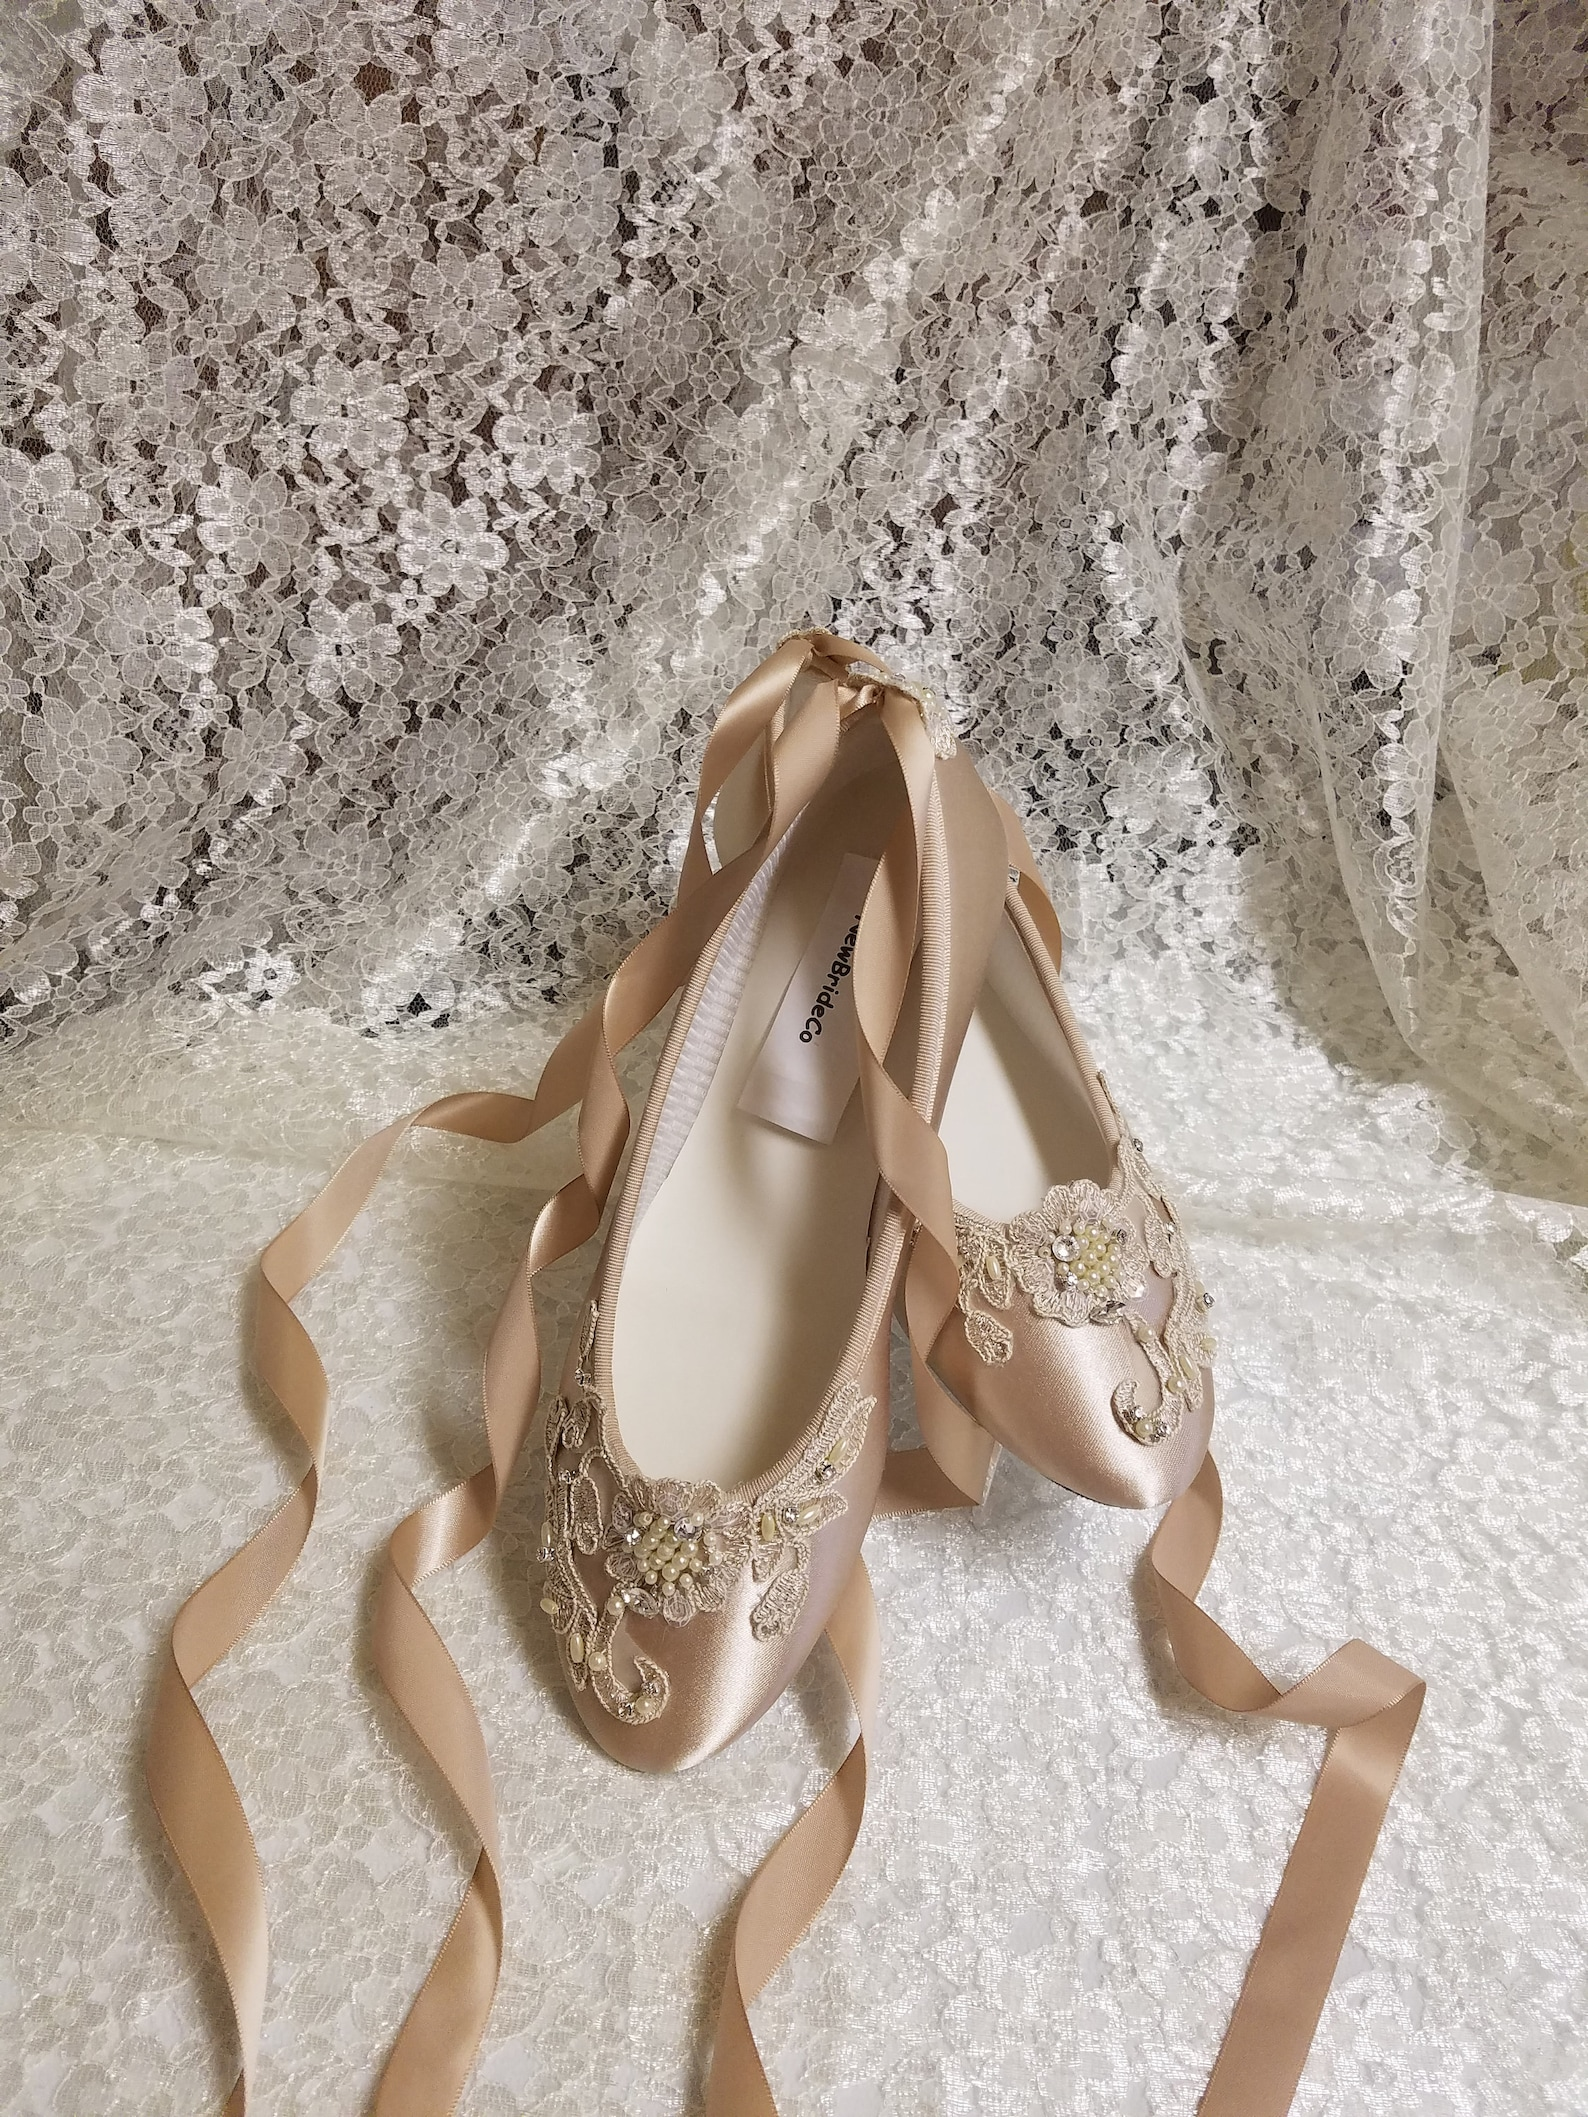 gold champagne shoes ballerina style satin lace appliqué crystals pearls, lace up ribbon ballet style slipper, comfortable weddi